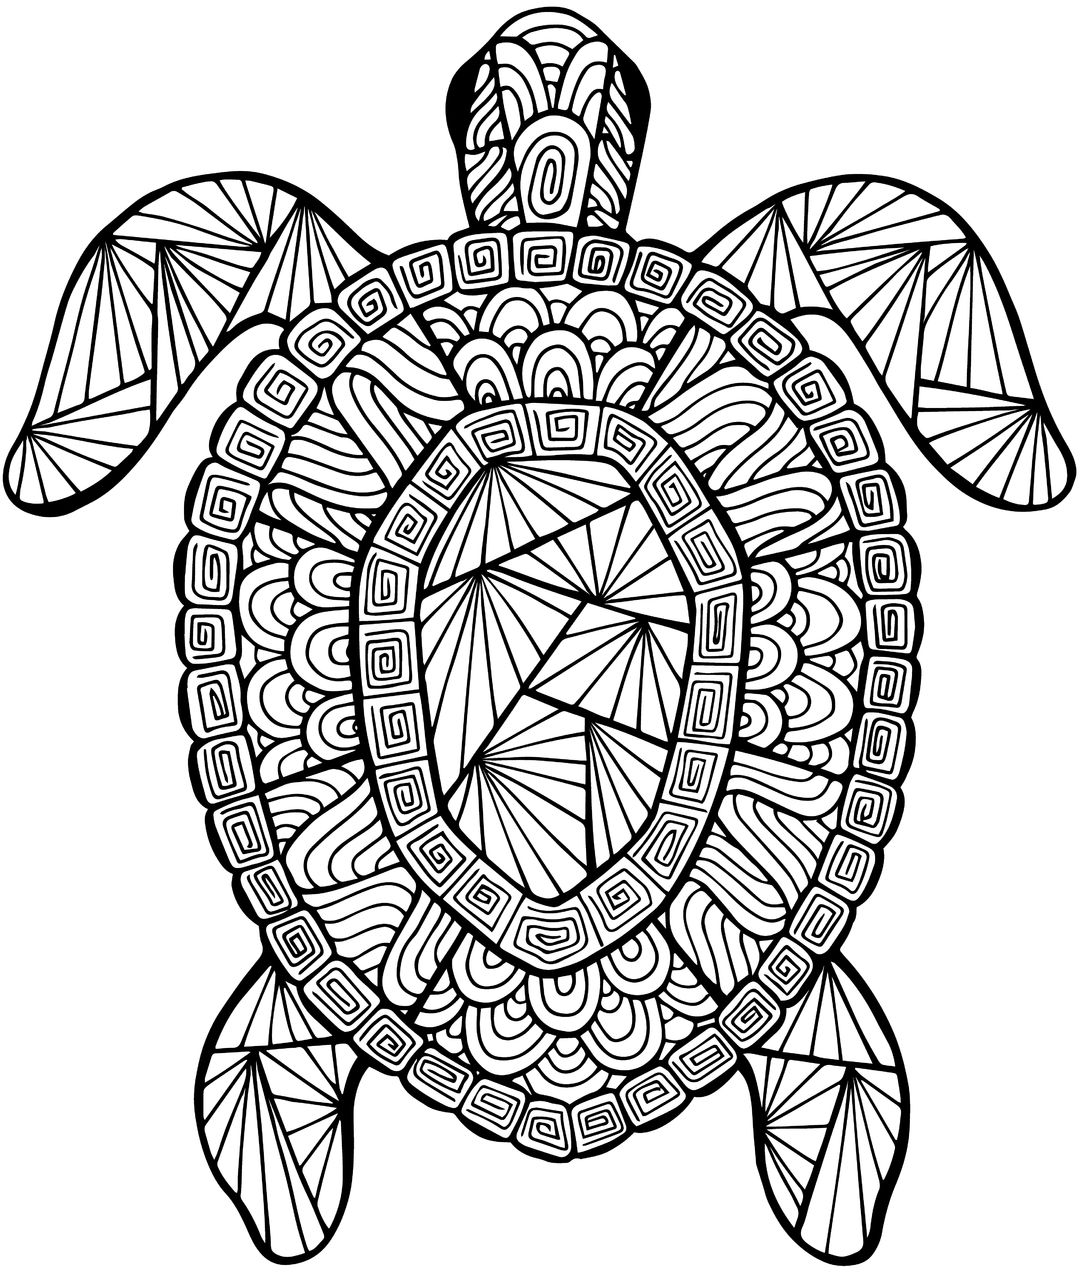 detailed coloring pictures detailed animal coloring pages bestofcoloringcom coloring detailed pictures